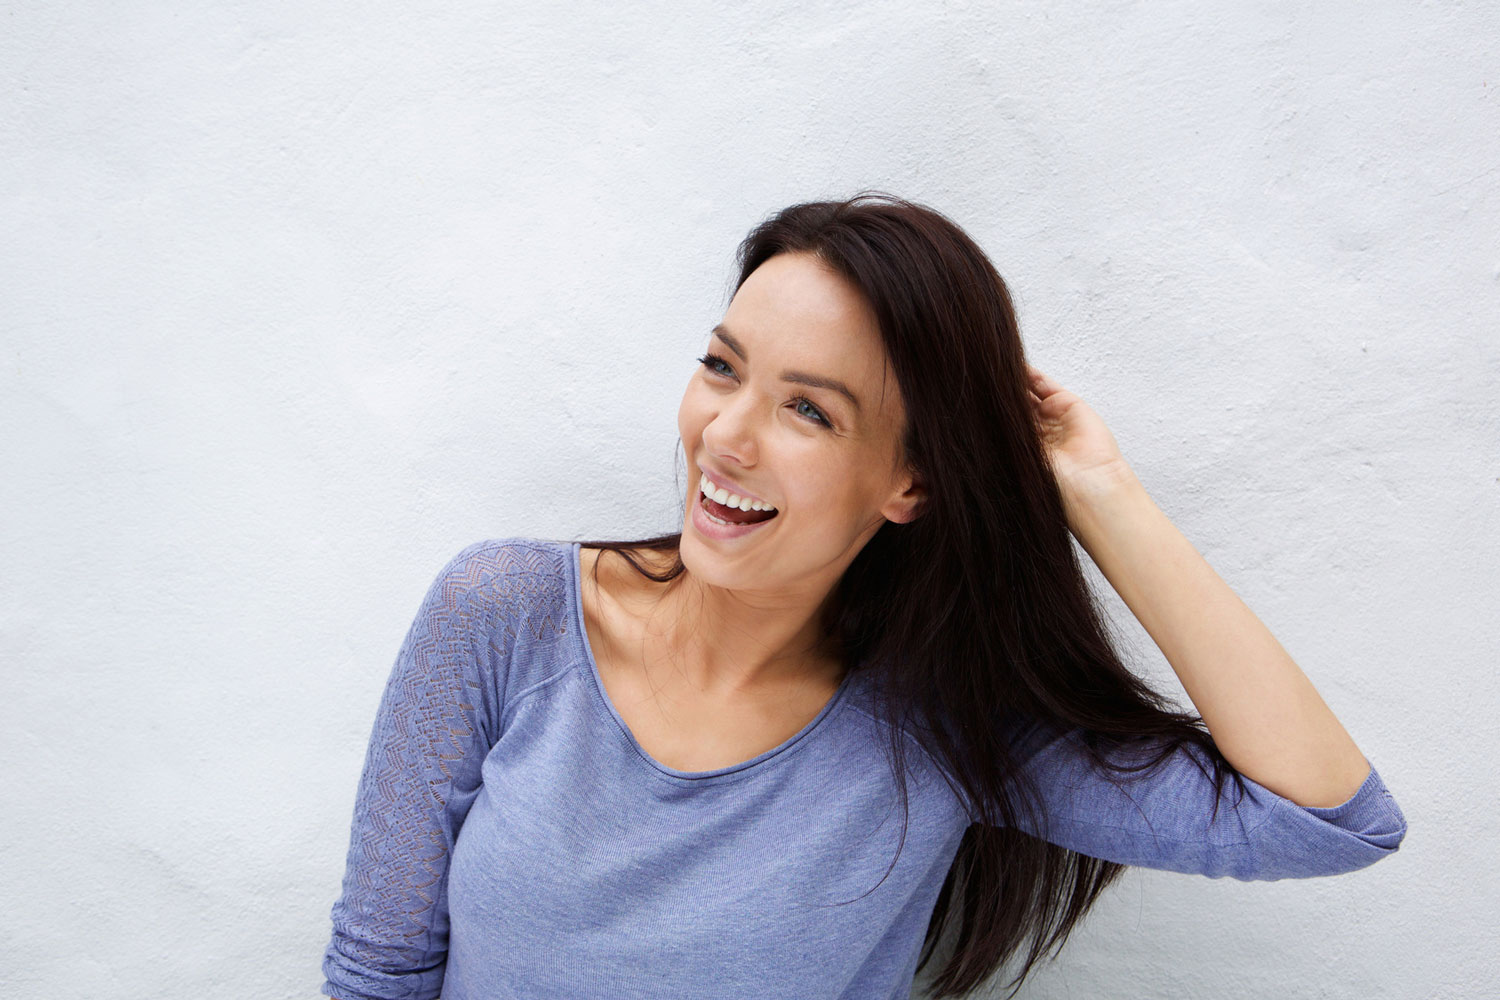 Home tooth whitening offer - Available from £199